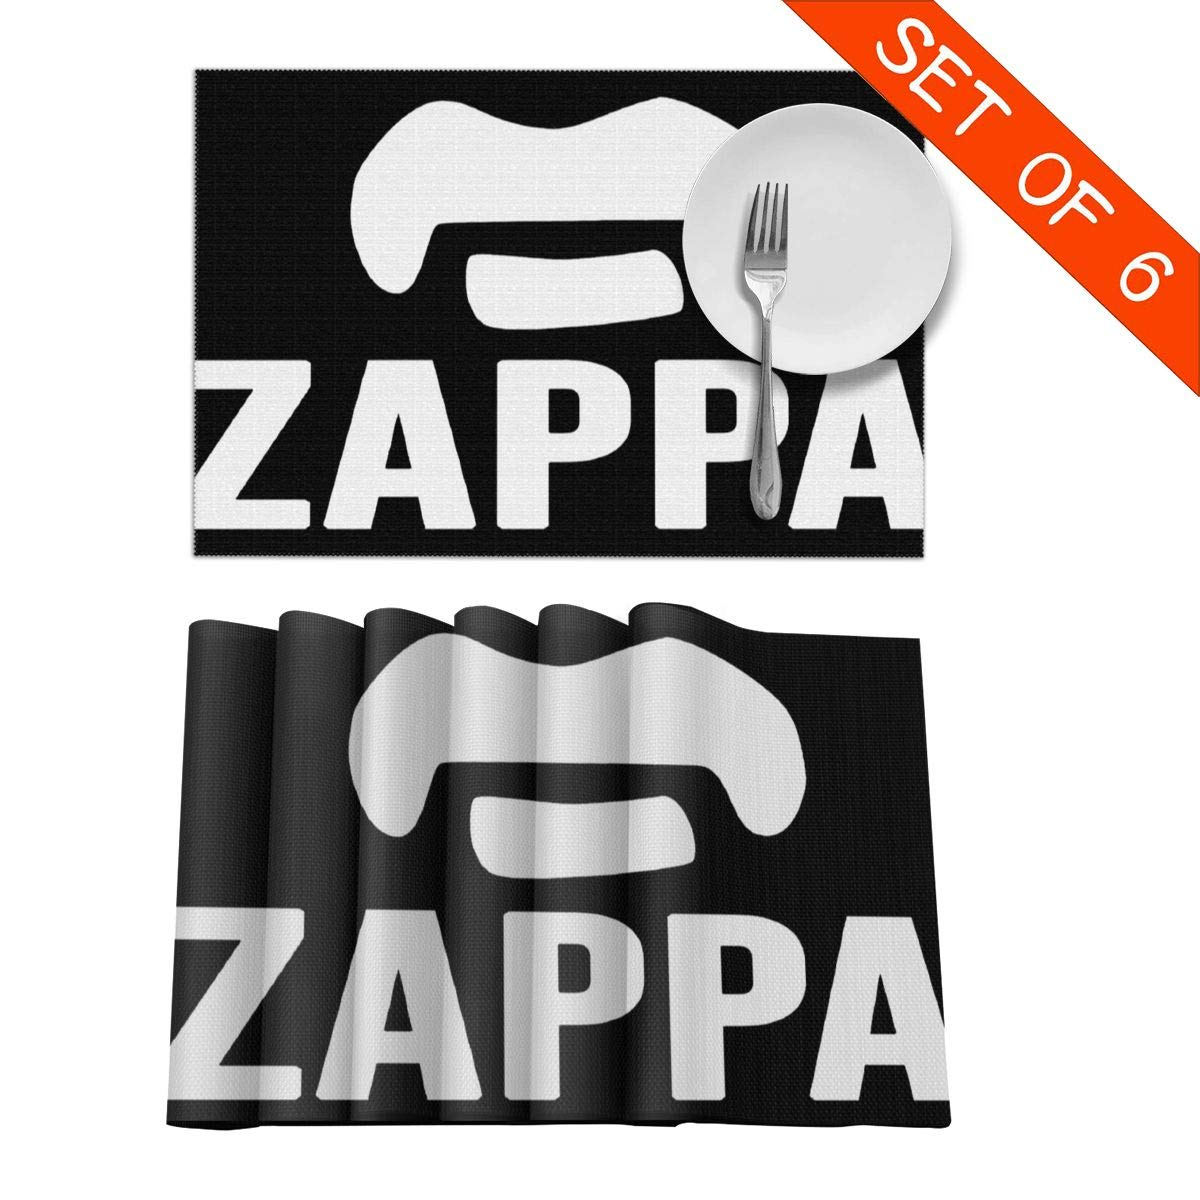 PhilipPVergara Frank Zappa Placemats Heat-Resistant Placemats Stain Resistant Anti-Skid Washable Table Mats Set of 6 Wipe Clean